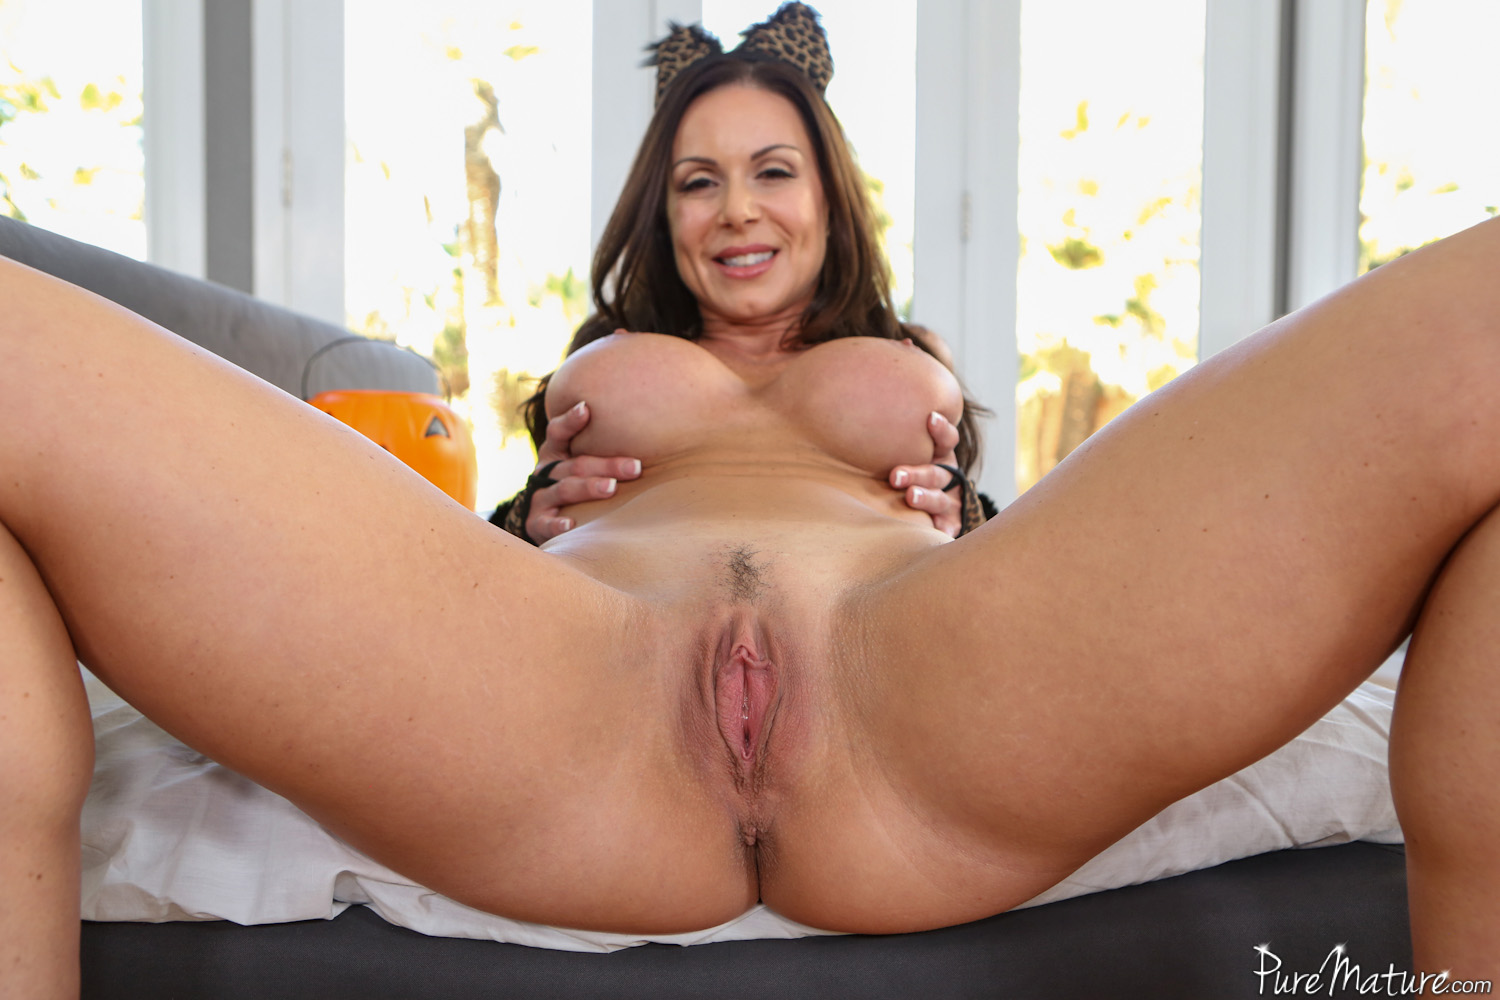 Kendra lust in house sitters threesome